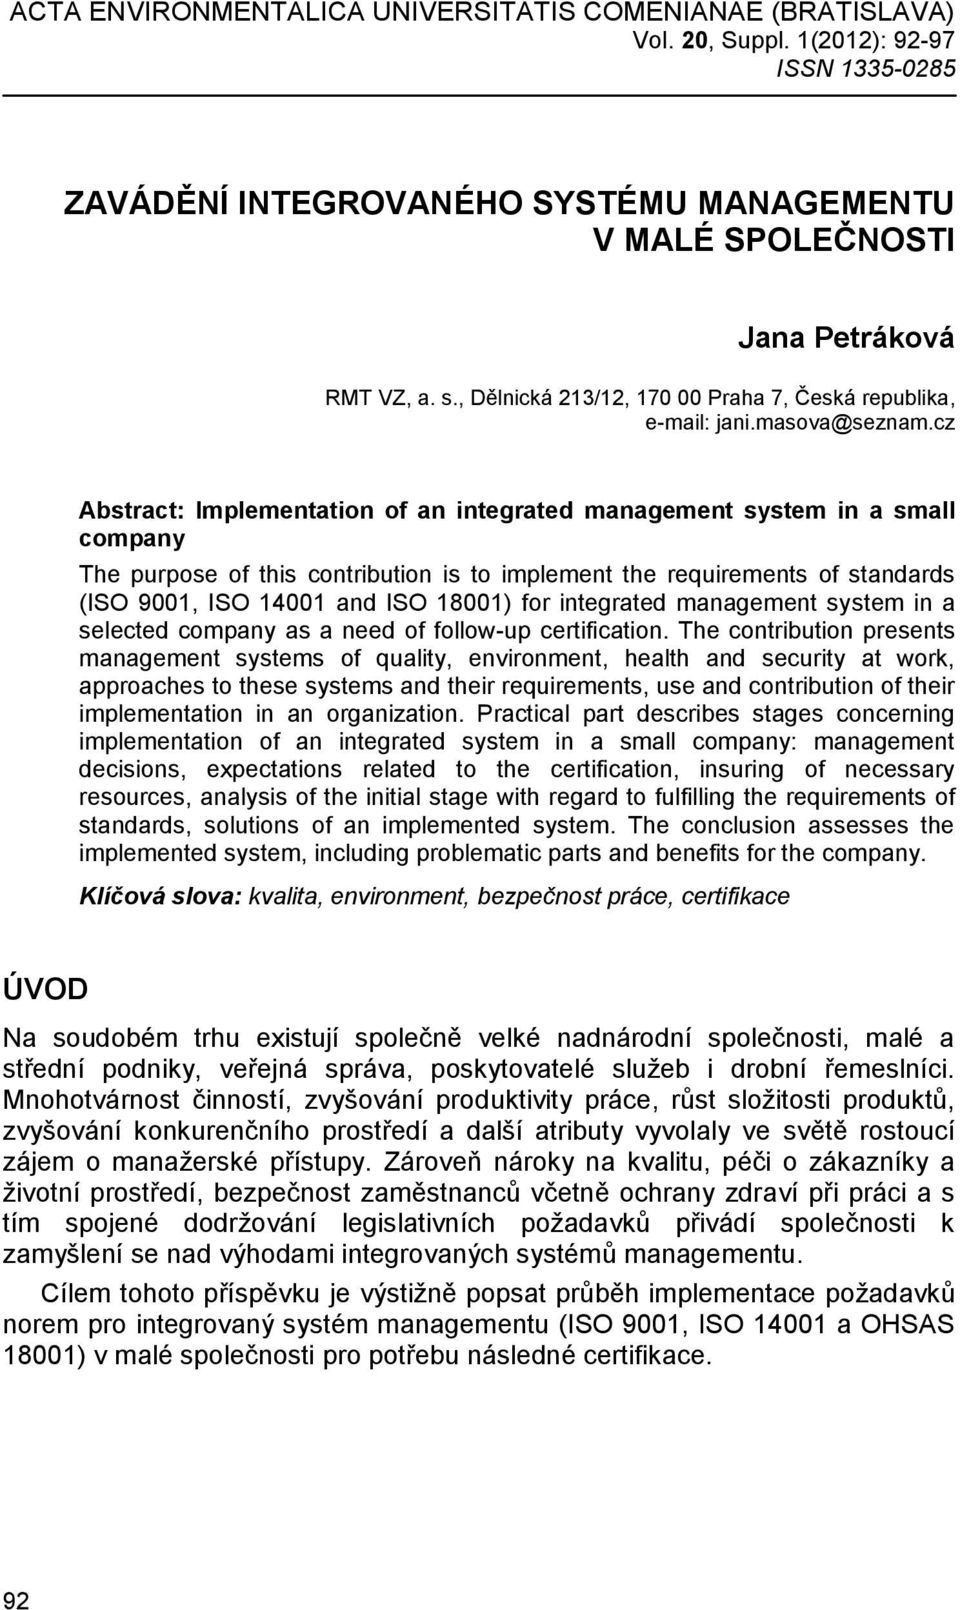 cz Abstract: Implementation of an integrated management system in a small company The purpose of this contribution is to implement the requirements of standards (ISO 9001, ISO 14001 and ISO 18001)